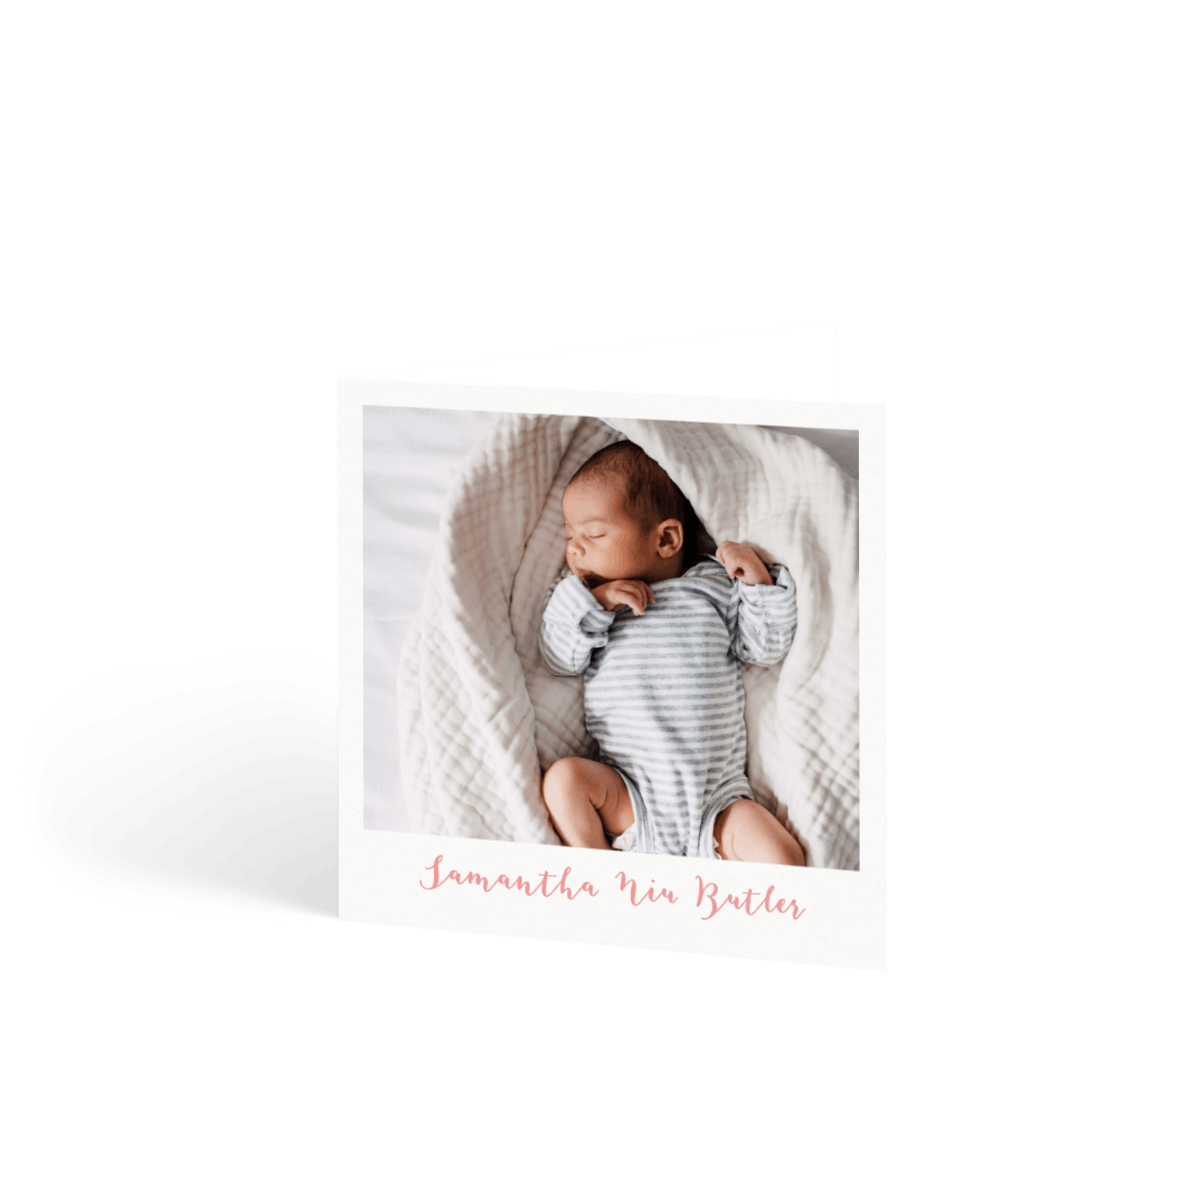 Https%3a%2f%2fwww.papier.com%2fproduct image%2f2178%2f16%2fbaby photo frame 607 front 1542201840.png?ixlib=rb 1.1